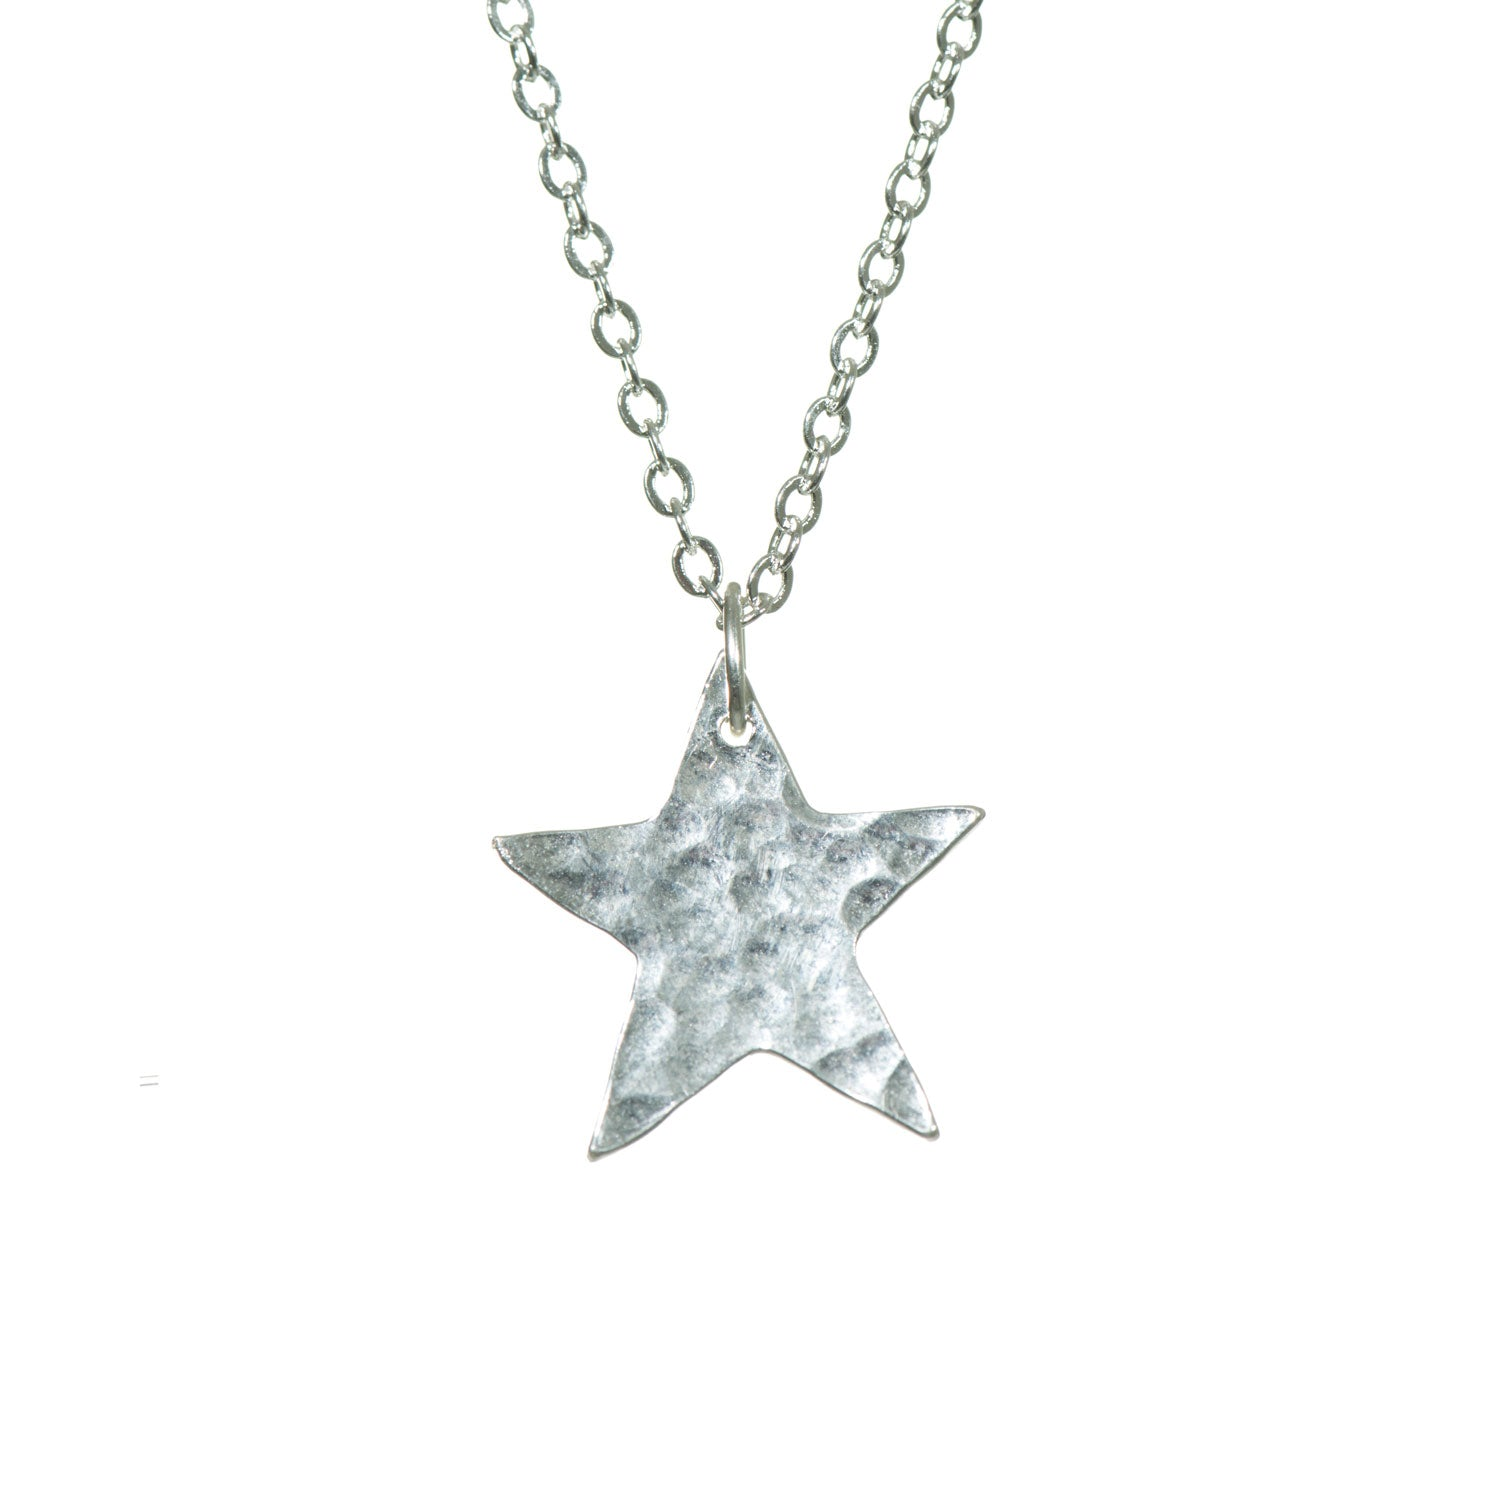 Plated star pendant